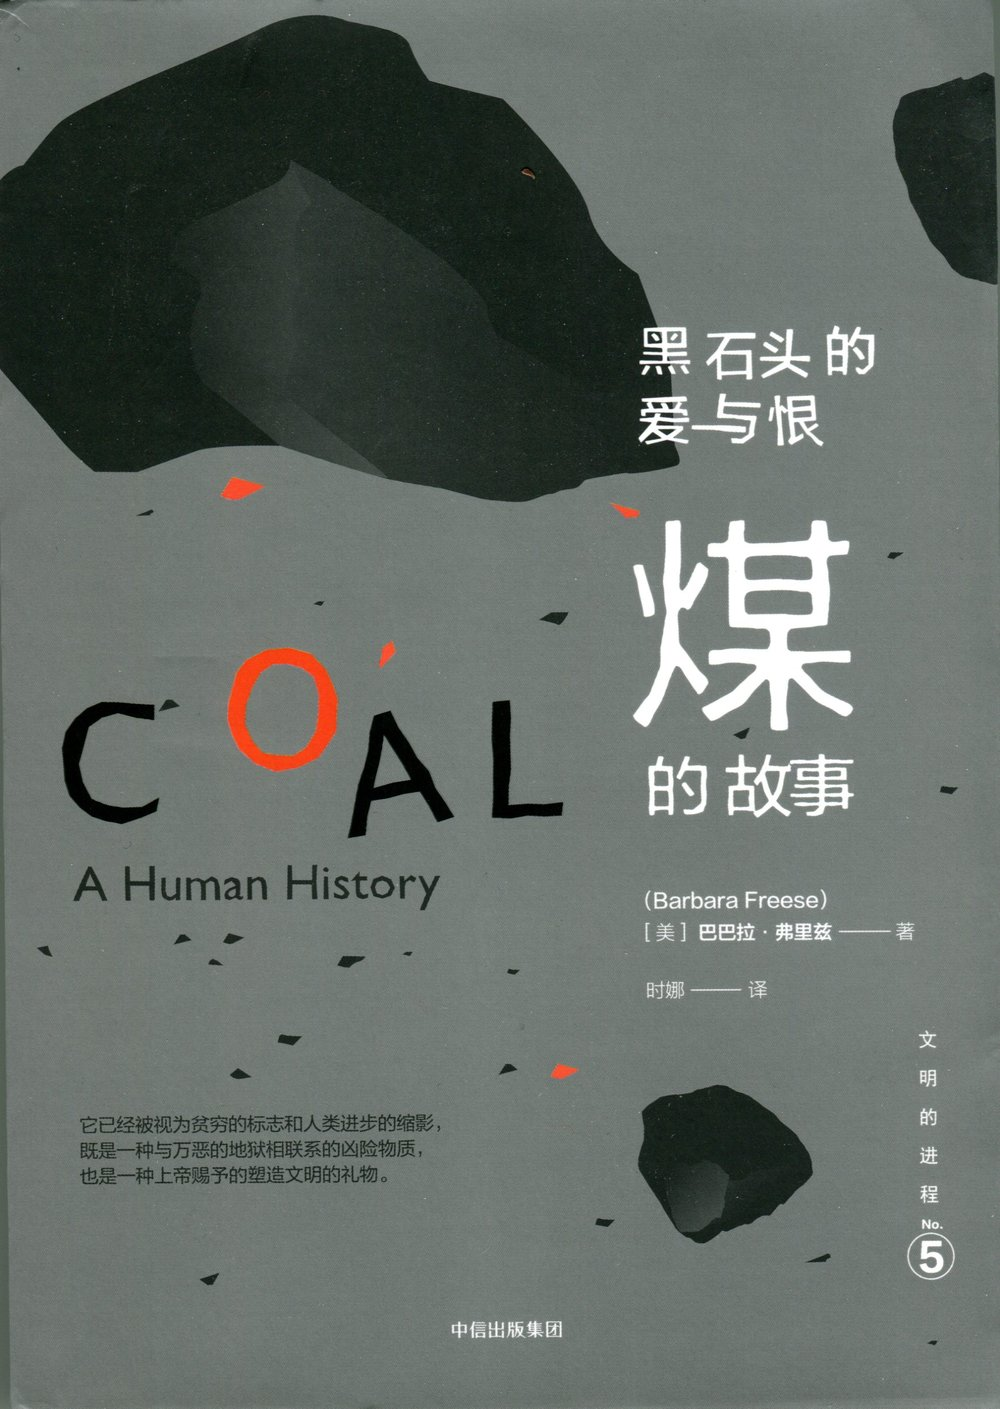 Coal Chinese cover127.jpg